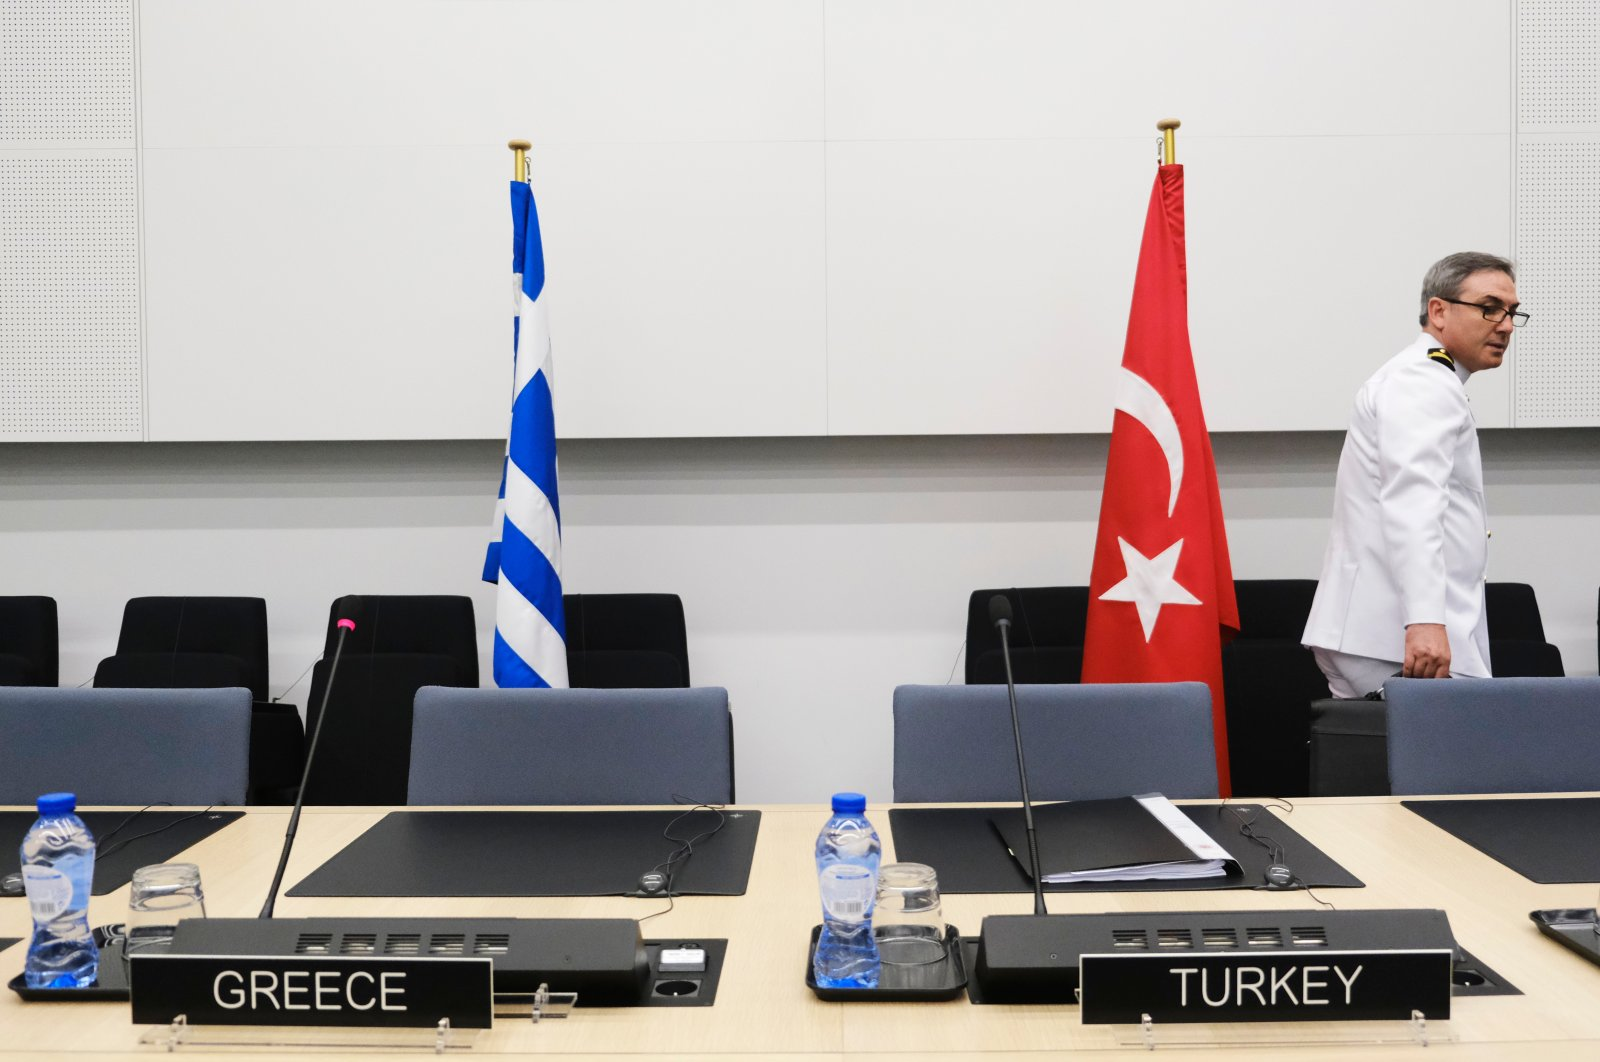 First day of NATO defense ministers meeting is held at NATO headquarters, in Brussels, Belgium, on June 26, 2019. (Shutterstock Photo)